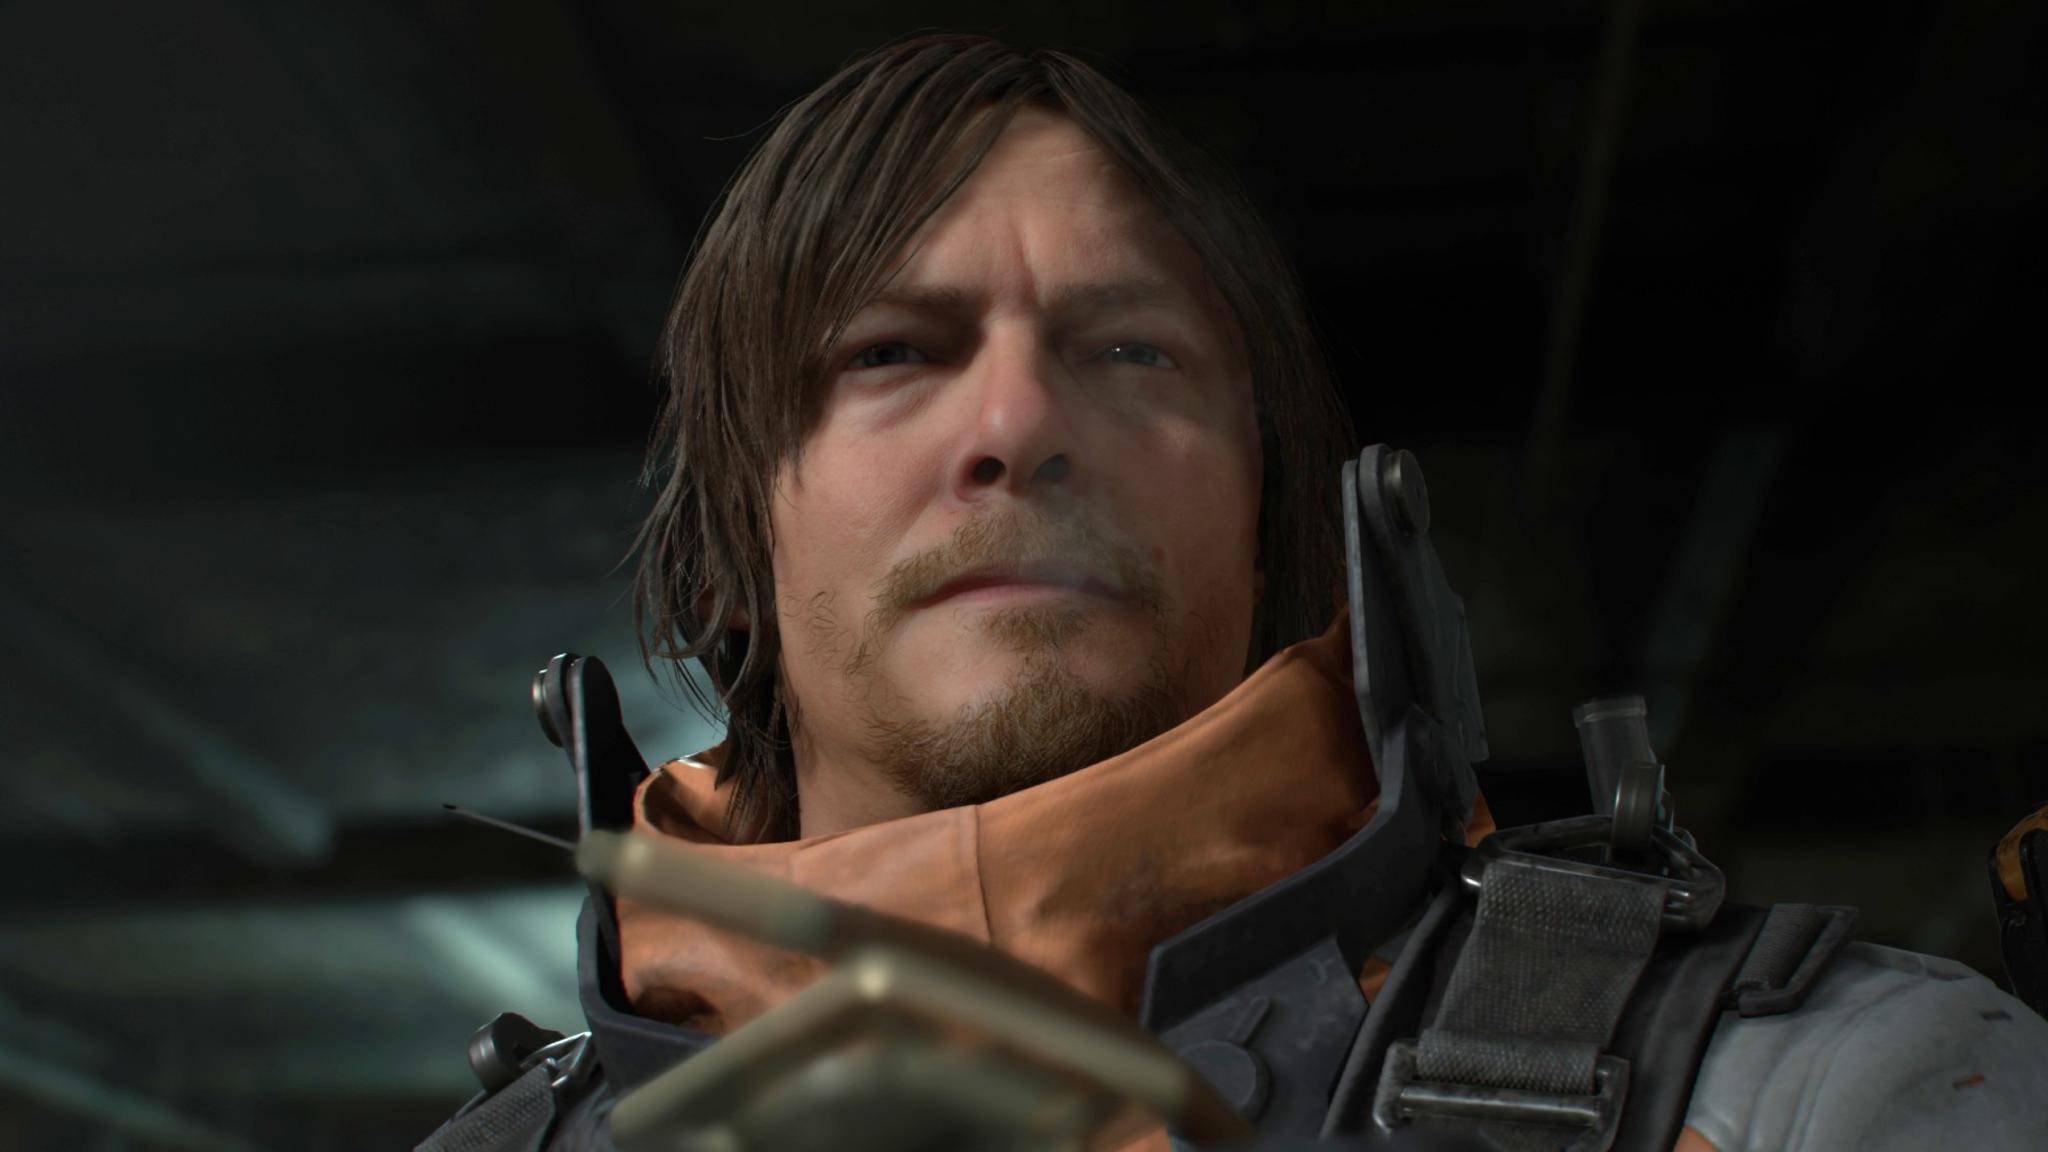 death-stranding-ps4-norman-reedus-sam-screenshot